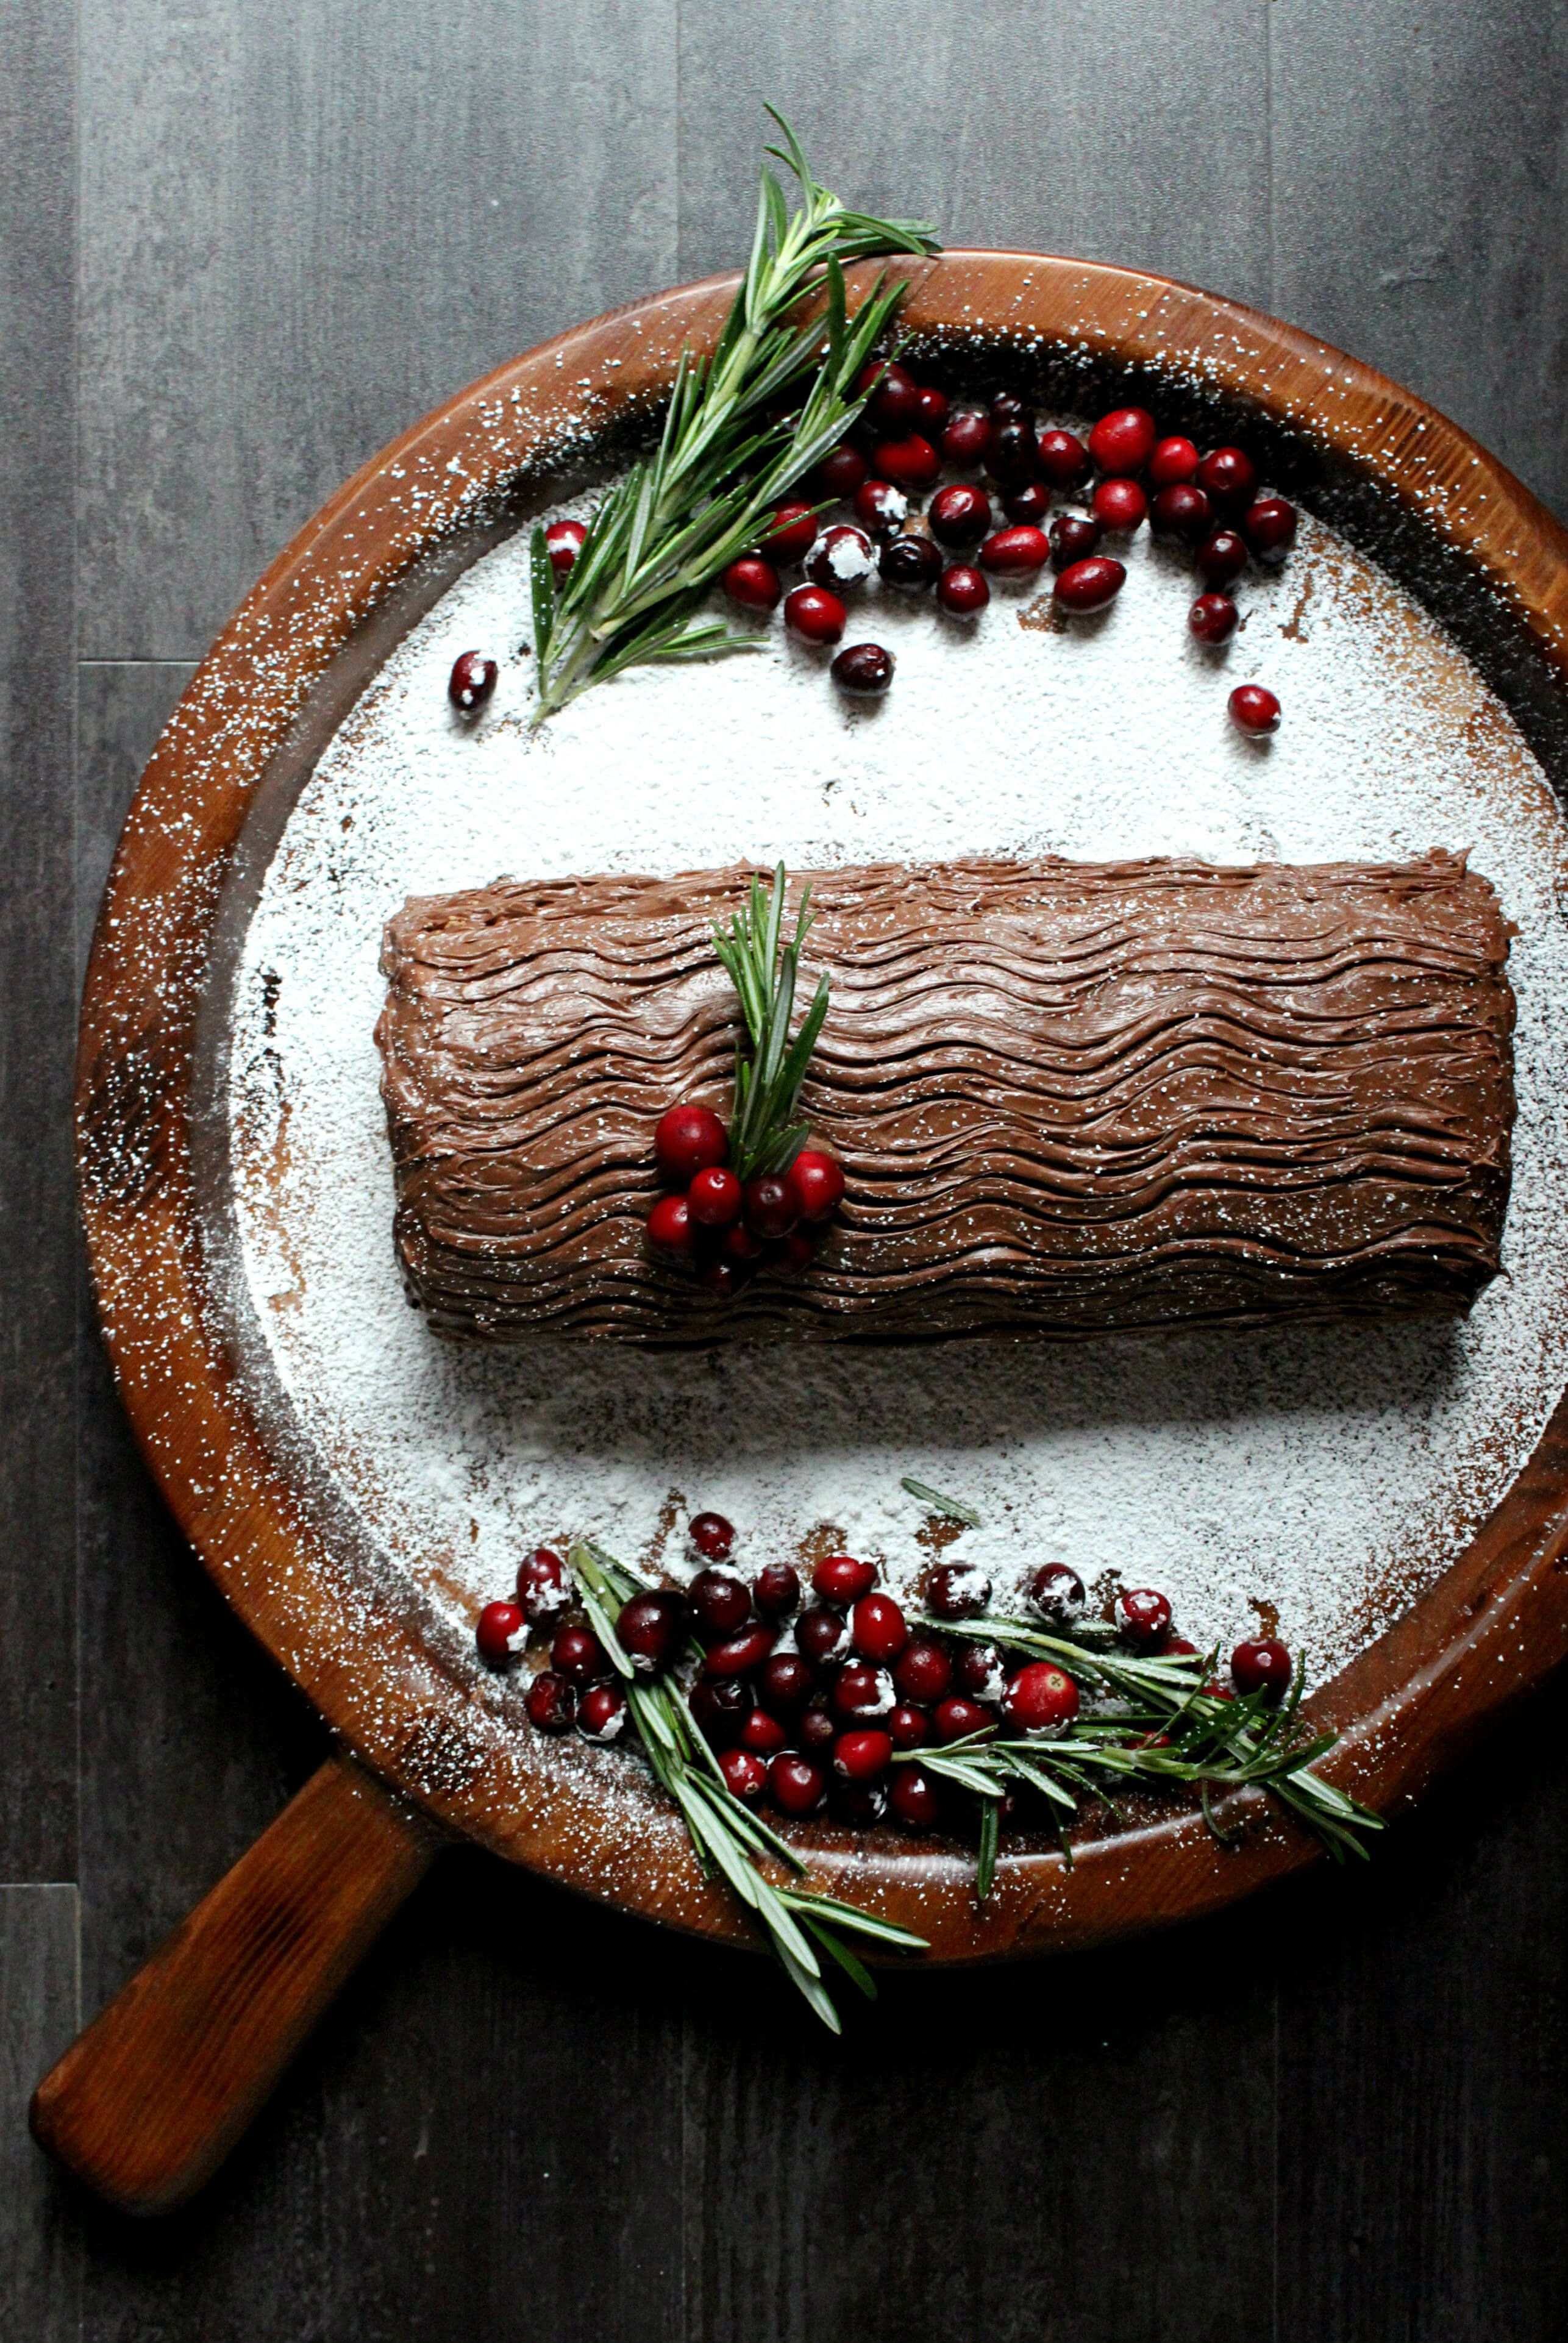 A terrific Christmas dessert for bakers who like a challenge, this Classic Chocolate Yule Log Cake w/ Peanut Butter Mousse is a show-stopper!